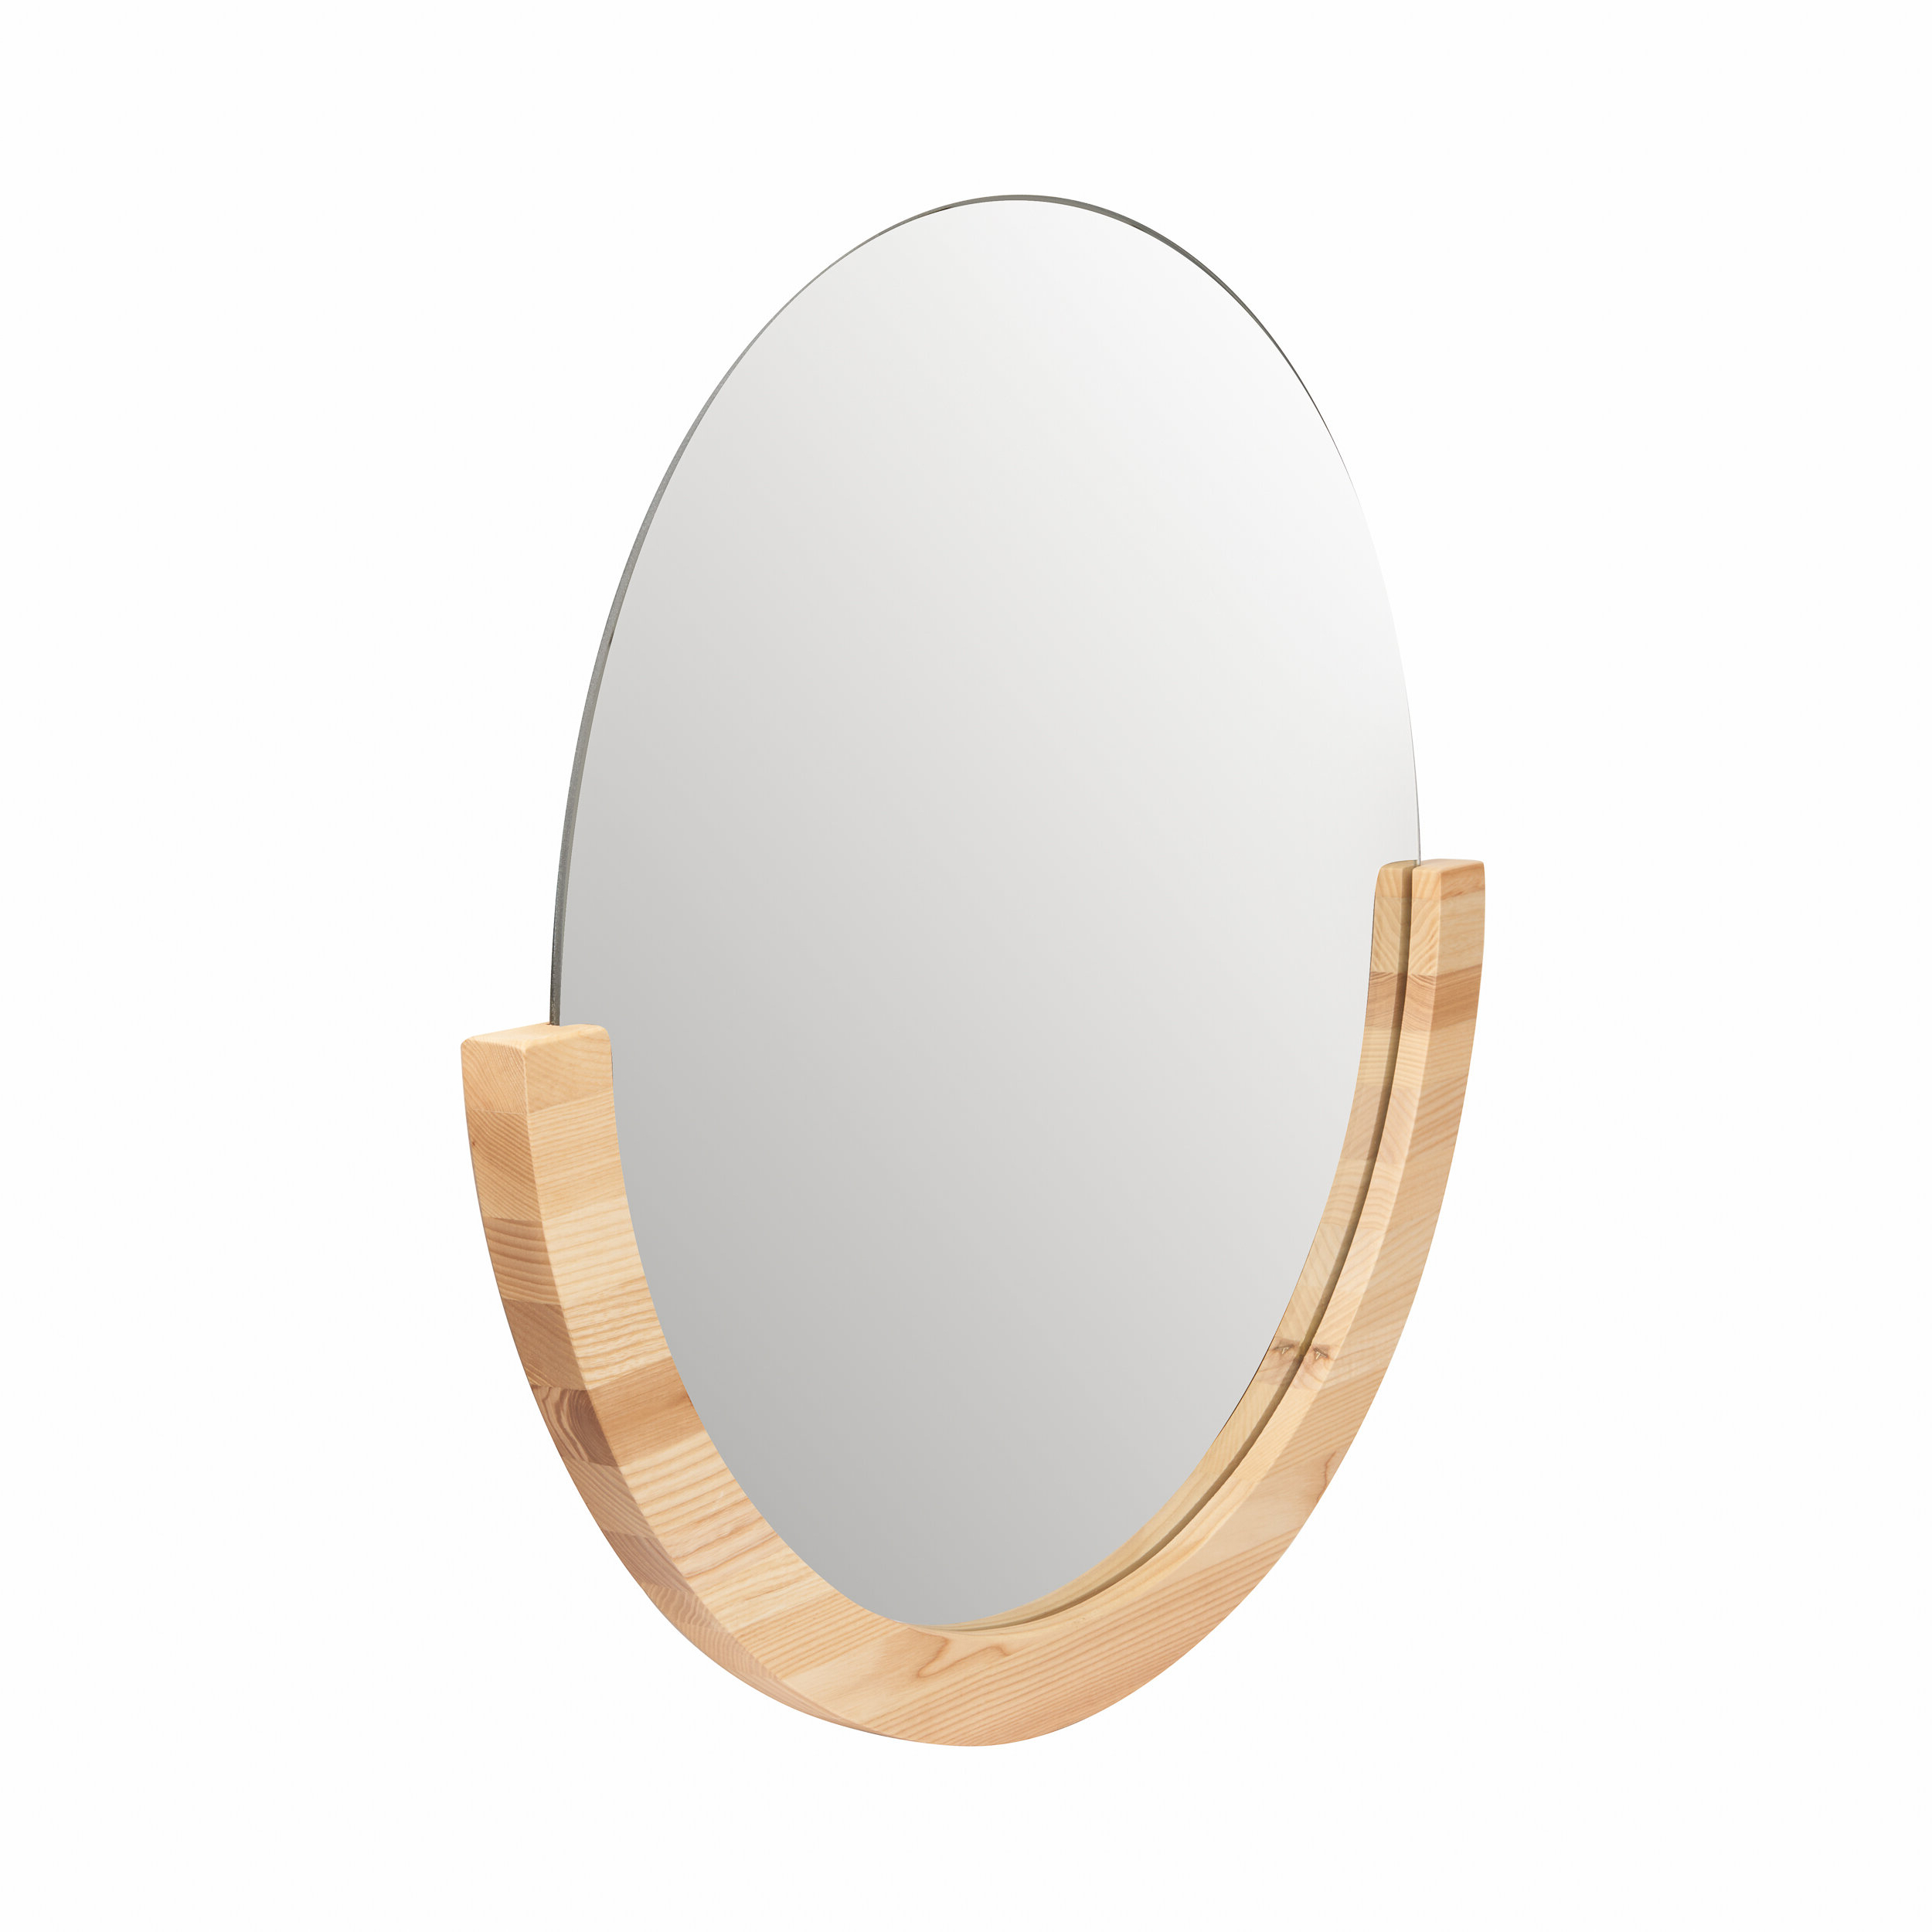 Mira Accent Mirror Intended For Well Known Swagger Accent Wall Mirrors (View 13 of 20)